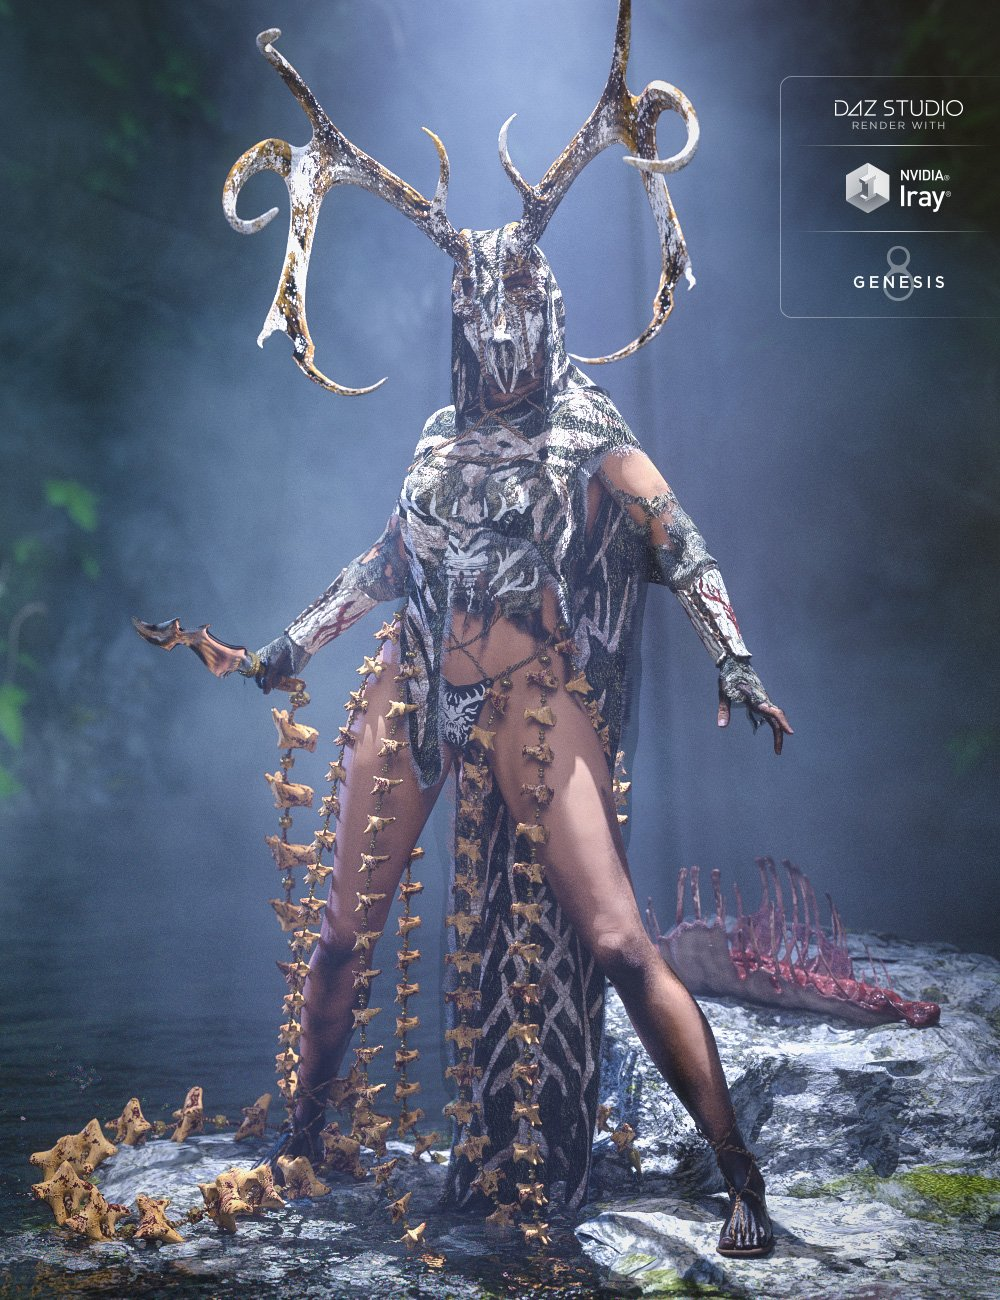 dforce Order of the Huntress: The Priestess by: Sixus1 Media, 3D Models by Daz 3D